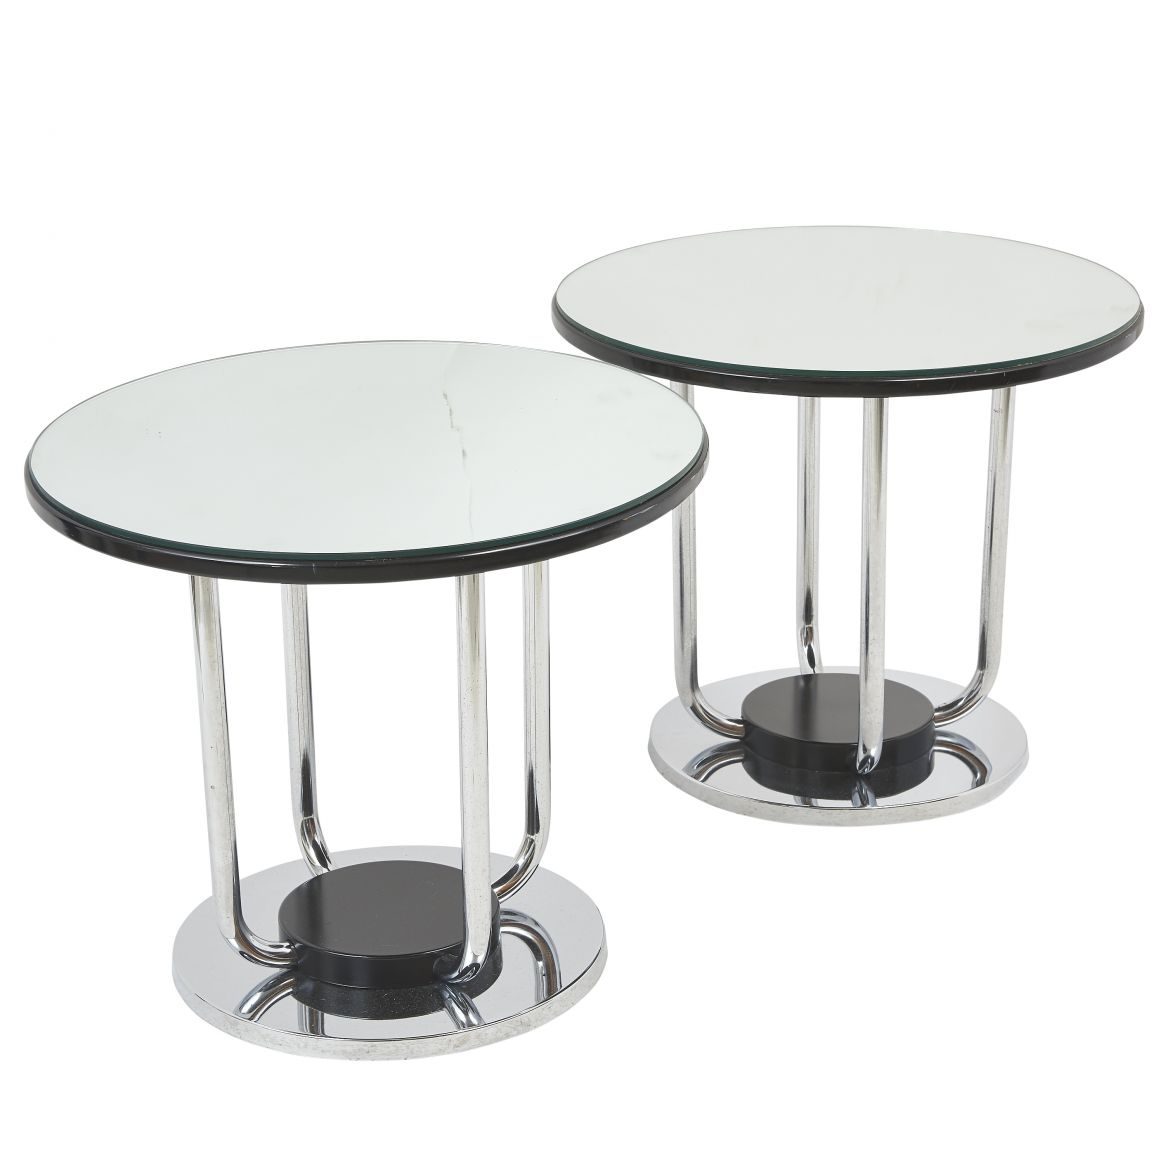 Italian Chrome And Mirrored Glass Circular Tables